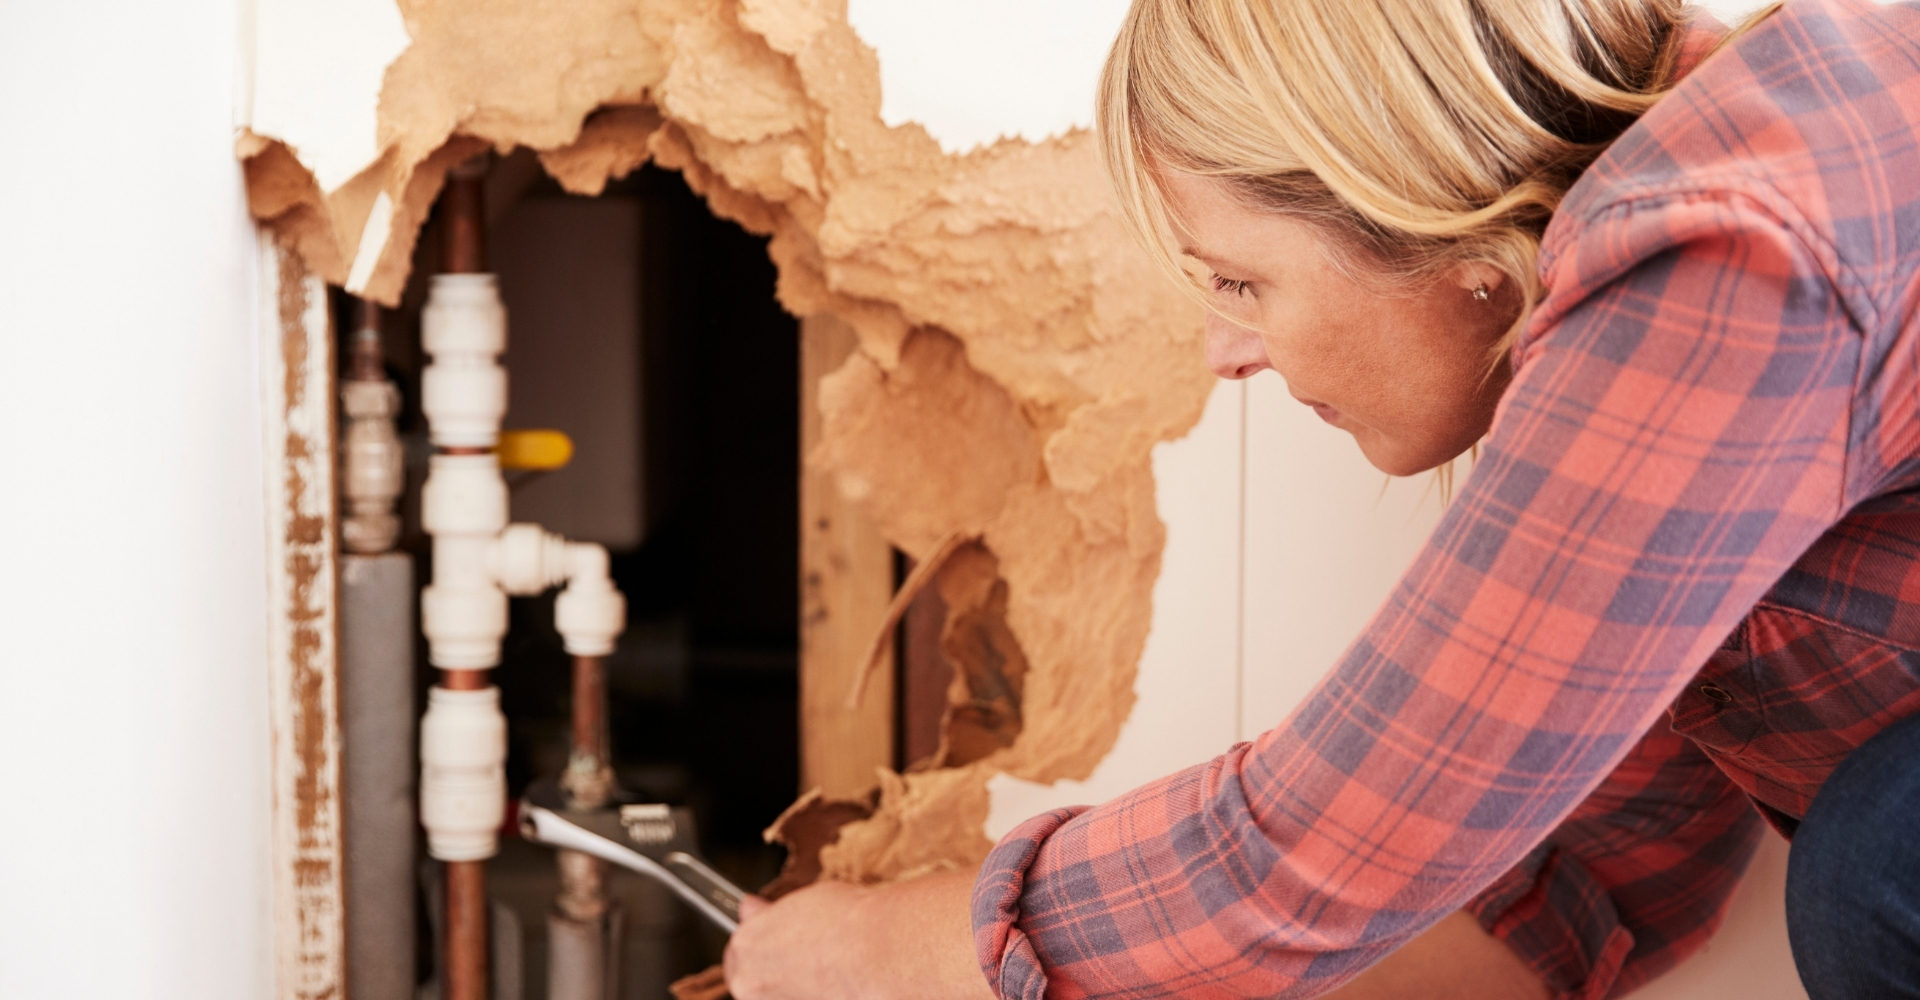 Alconero and Associates - Tips to prevent water damage in your Miami home